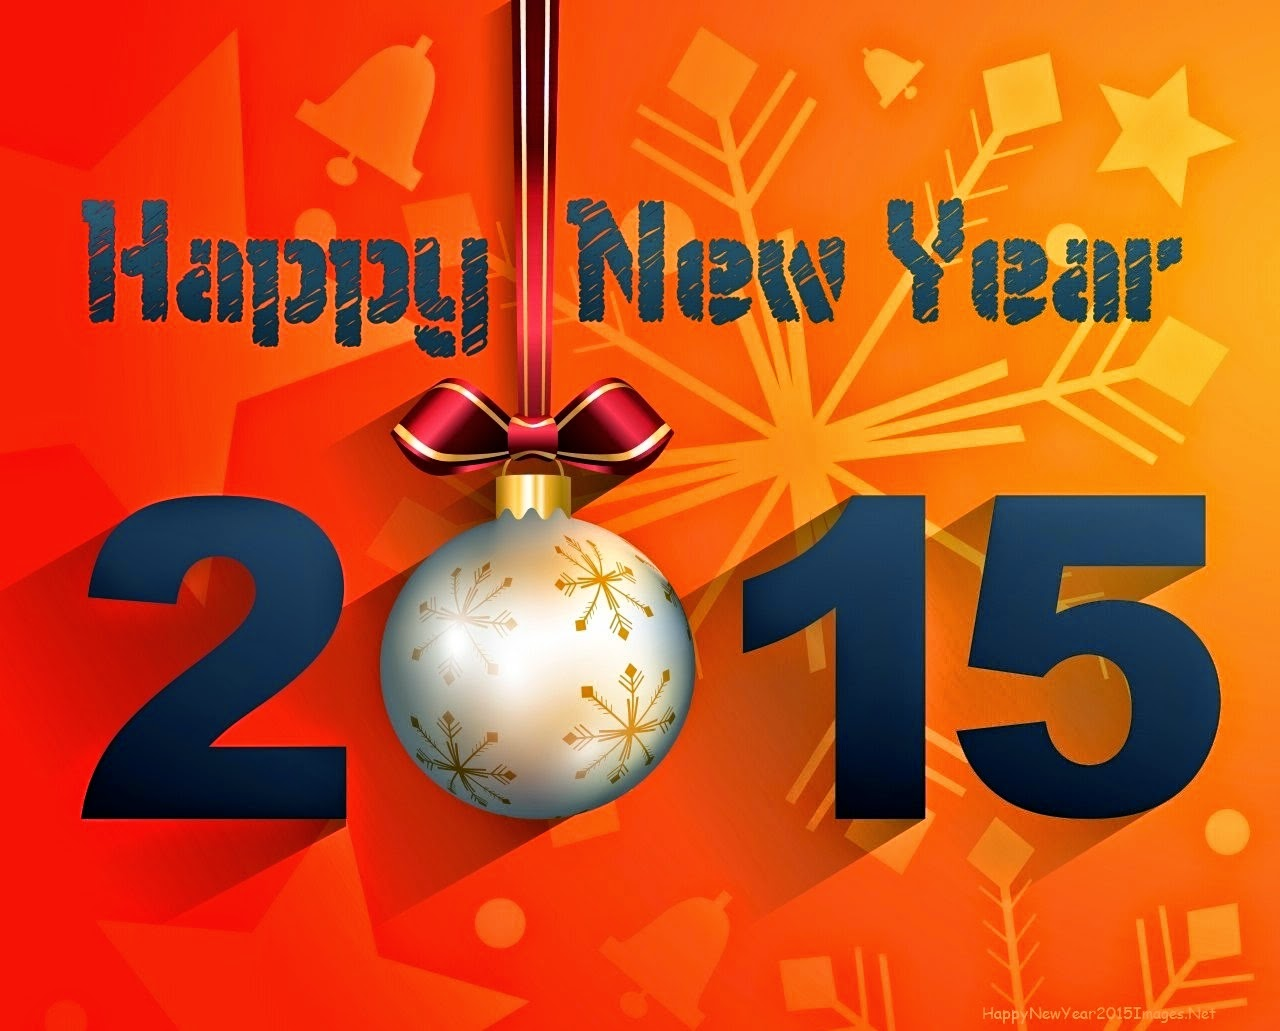 2015 Happy New Year HD Wallpapers DezignHD